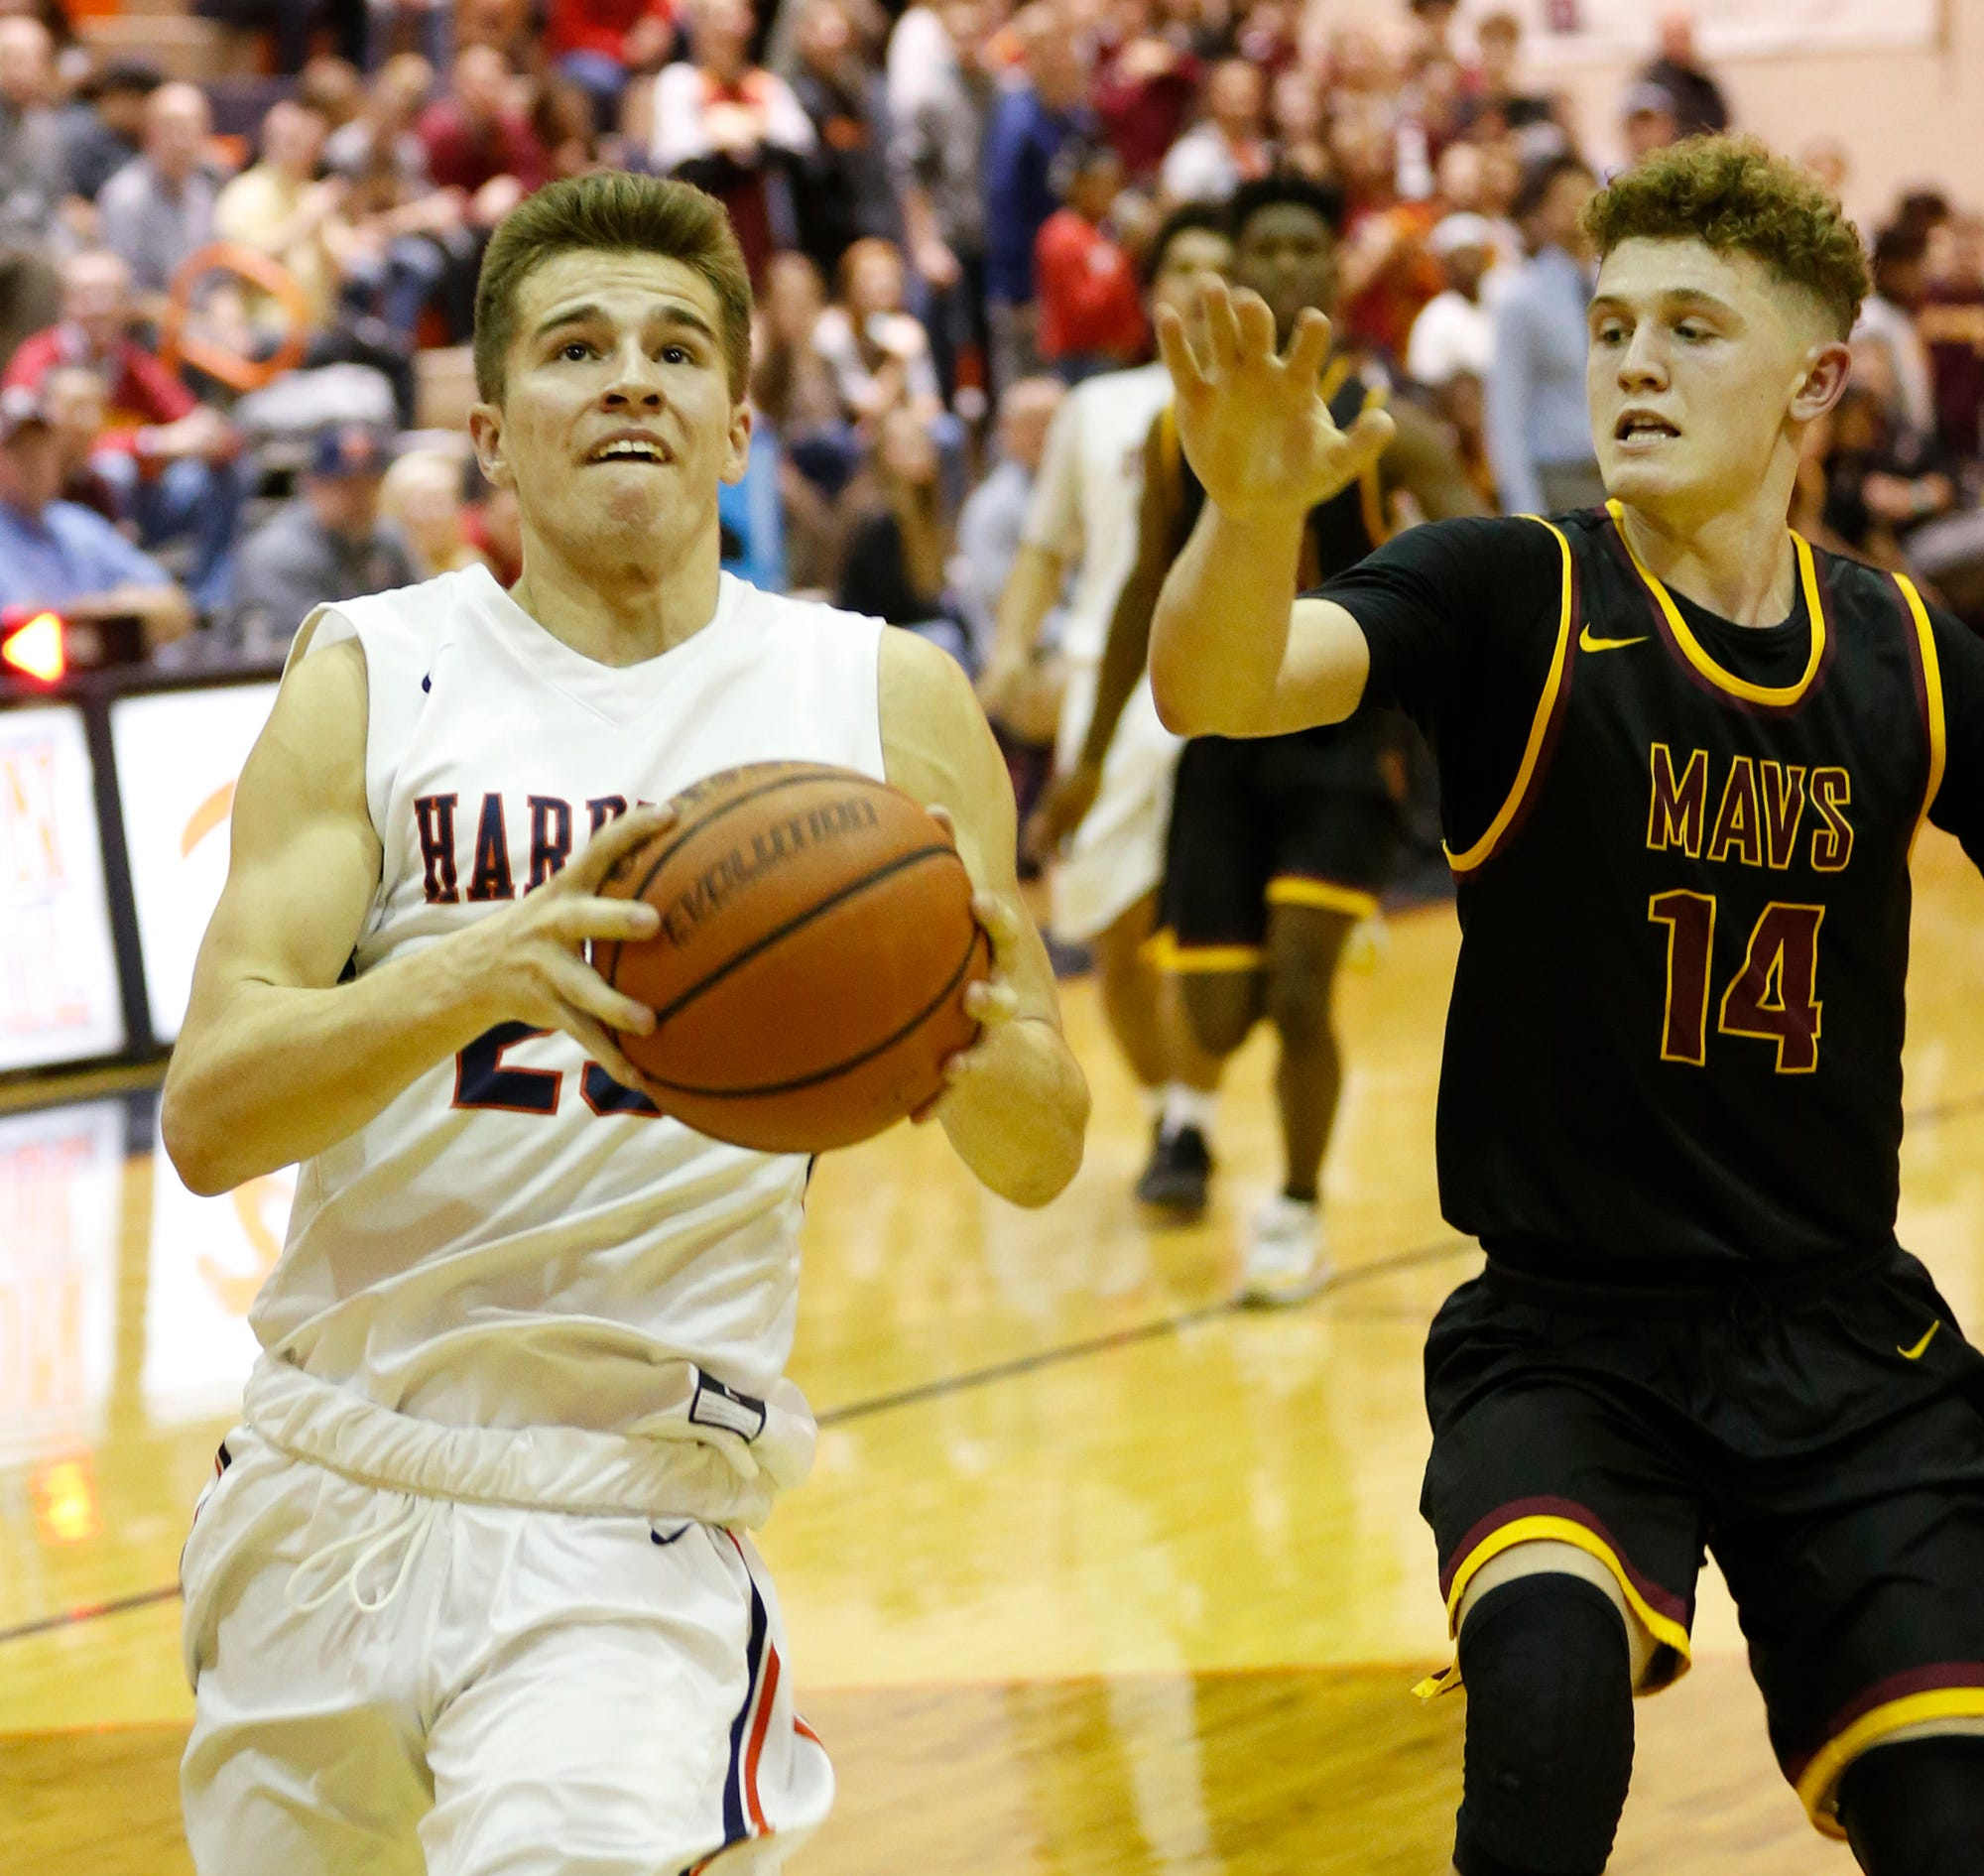 Clayton Burgh of Harrison with a drive to the basket against Rowen Farrell of McCutcheon Friday, December 14, 2018, in West Lafayette. Harrison defeated county rival McCutcheon 40-26.